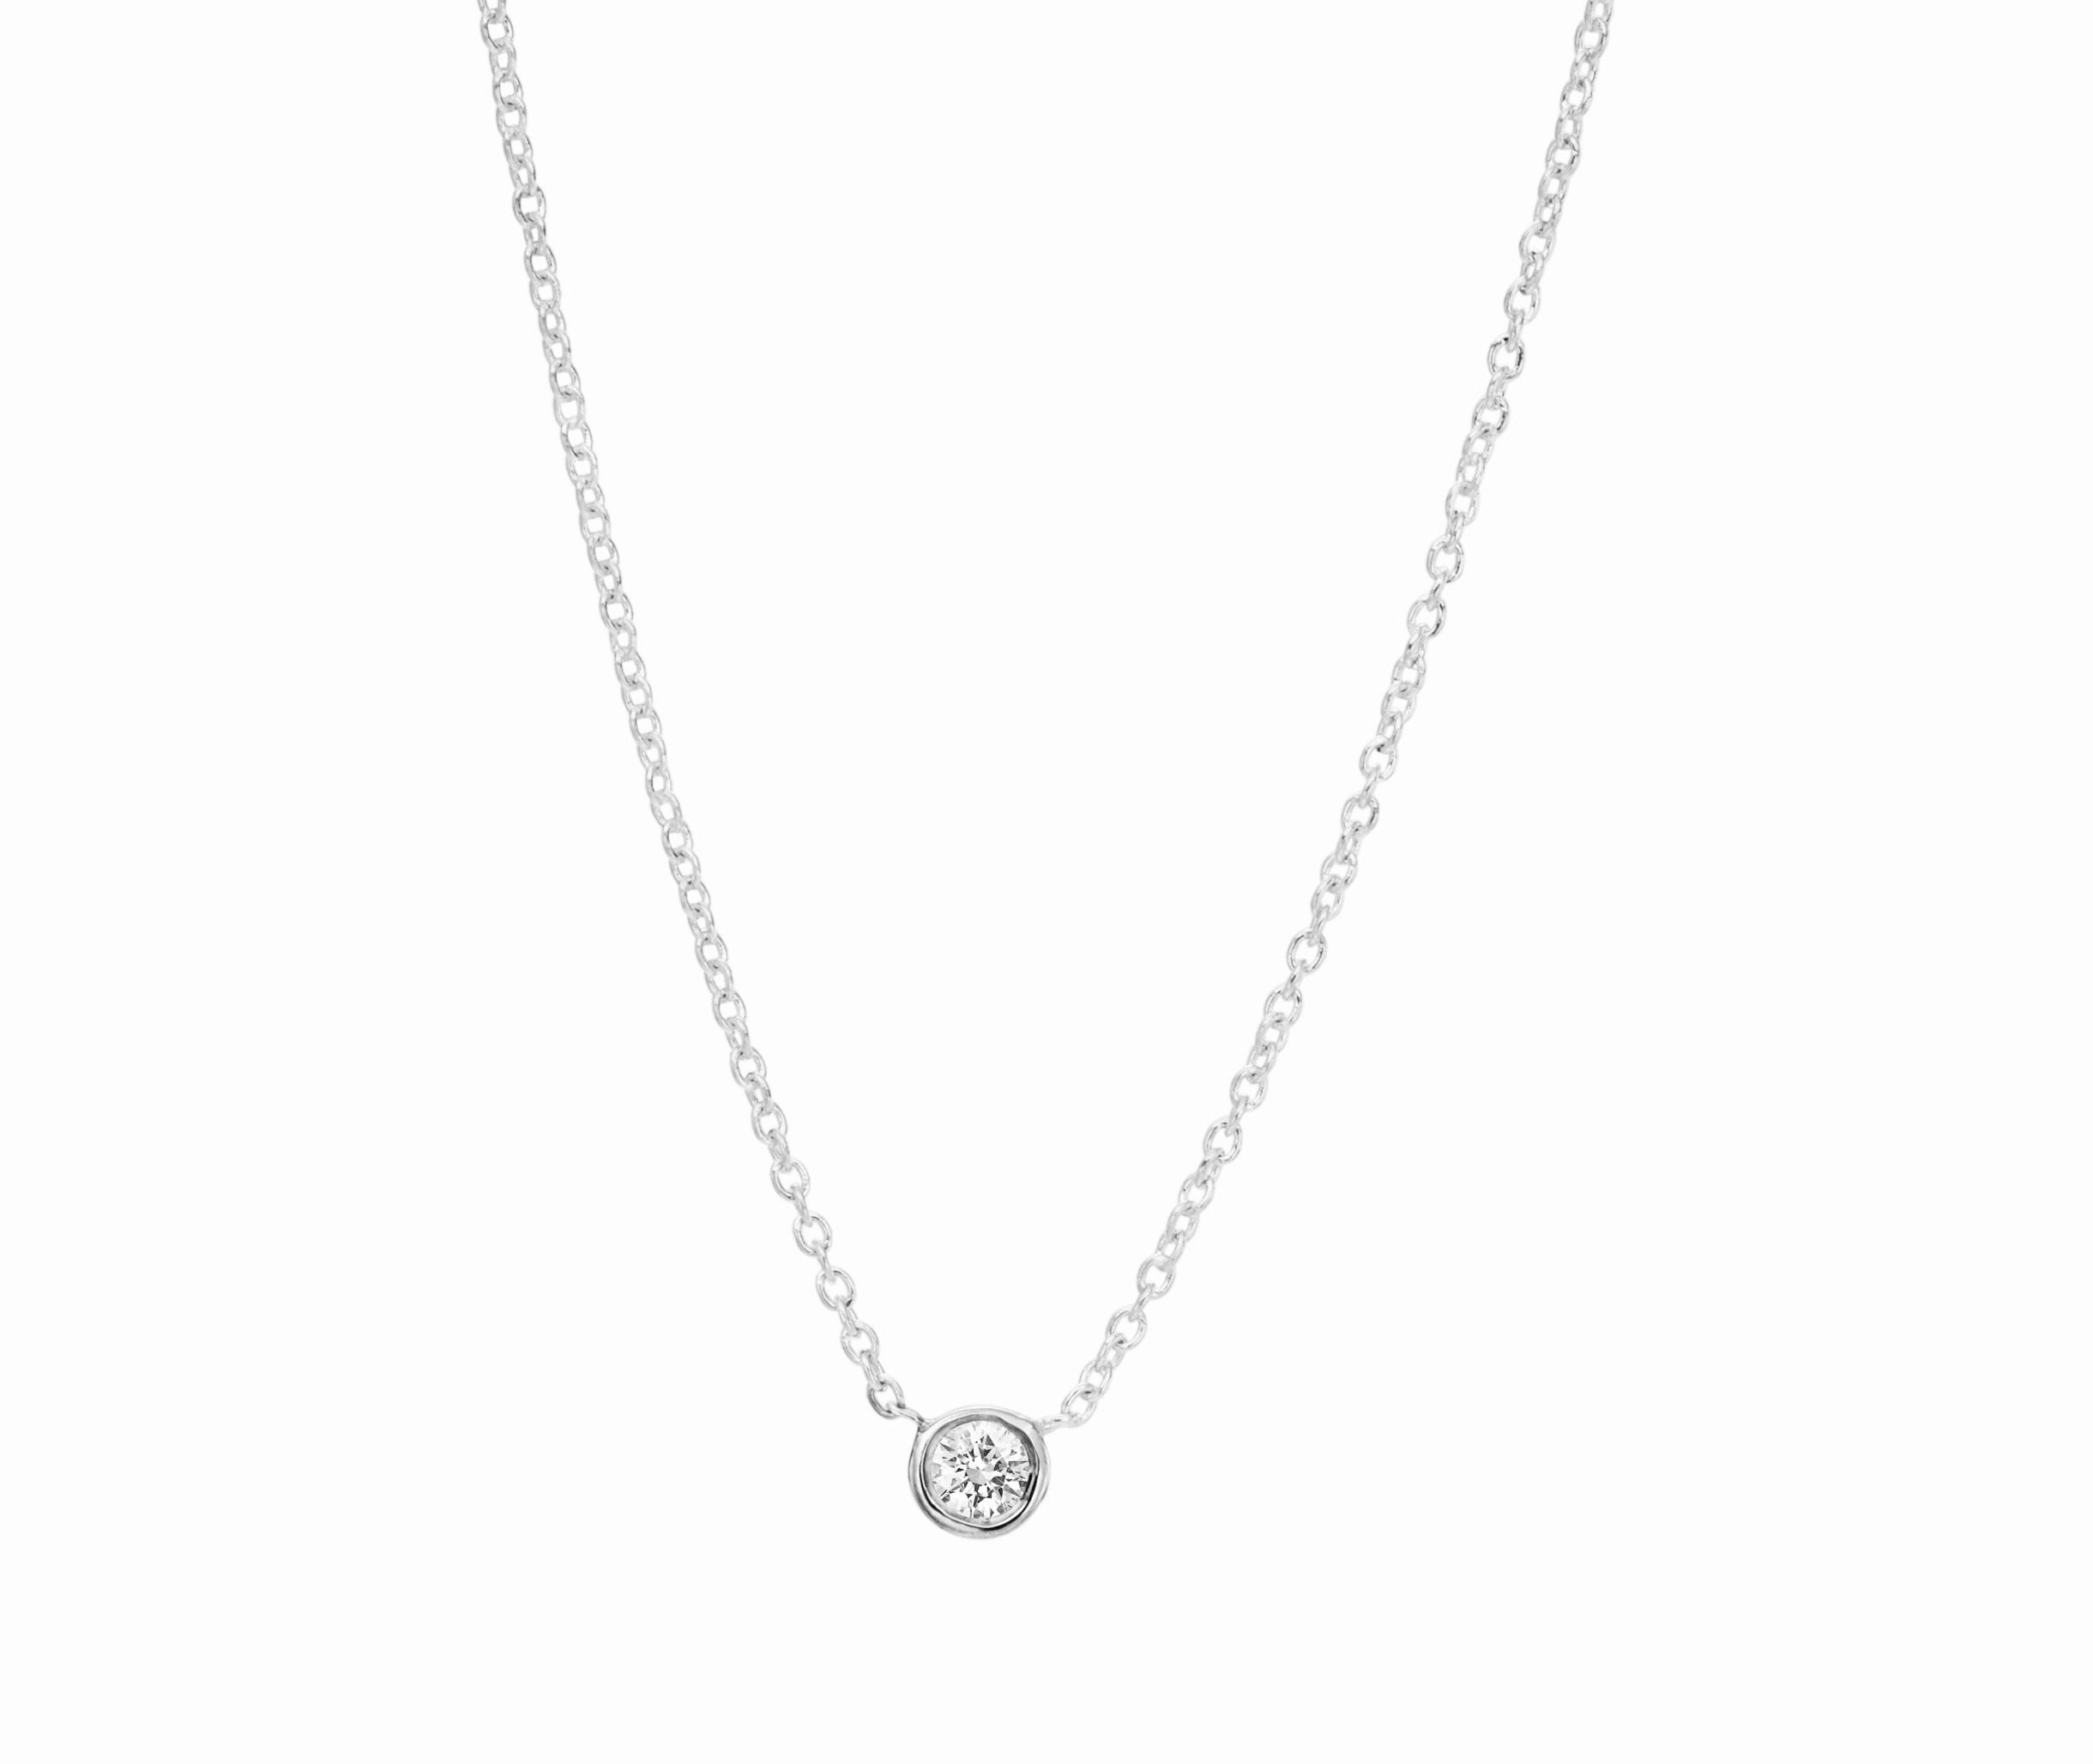 Single .10 ct Diamond Bezel Necklace designed by David Gardner, 18K white gold